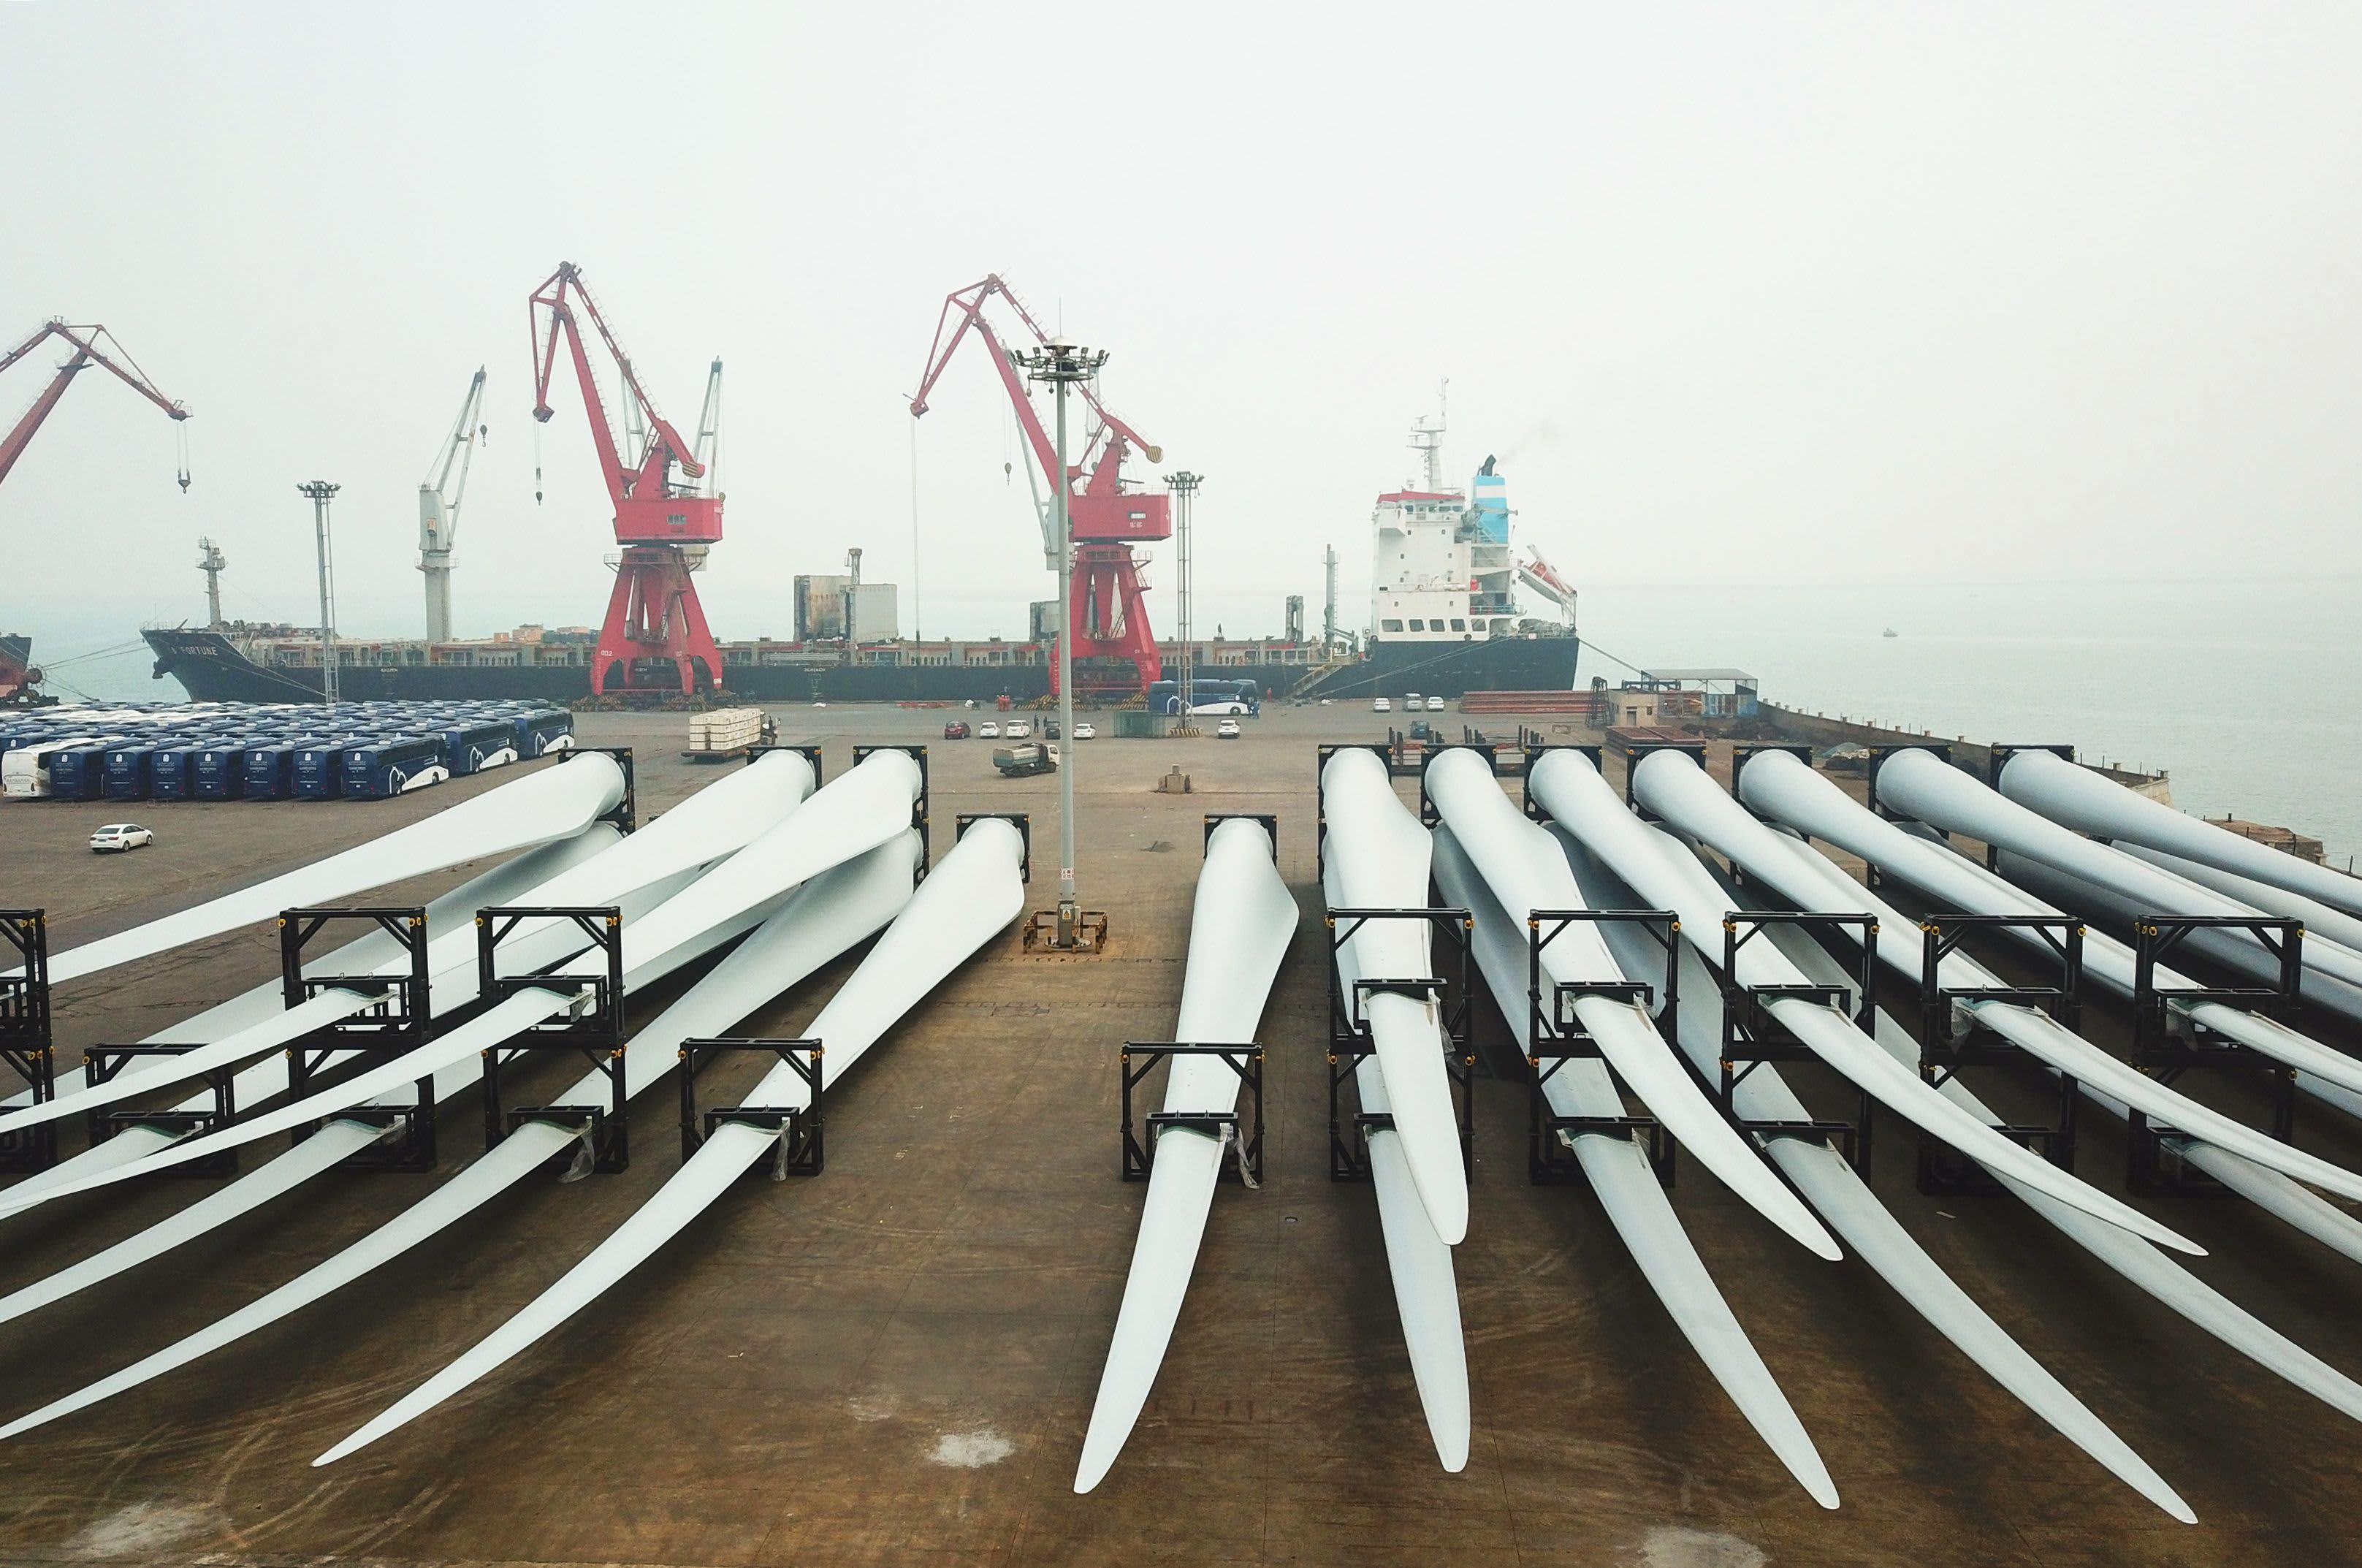 China's wind energy sector faces significant impact due to the coronavirus, Wood Mackenzie warns